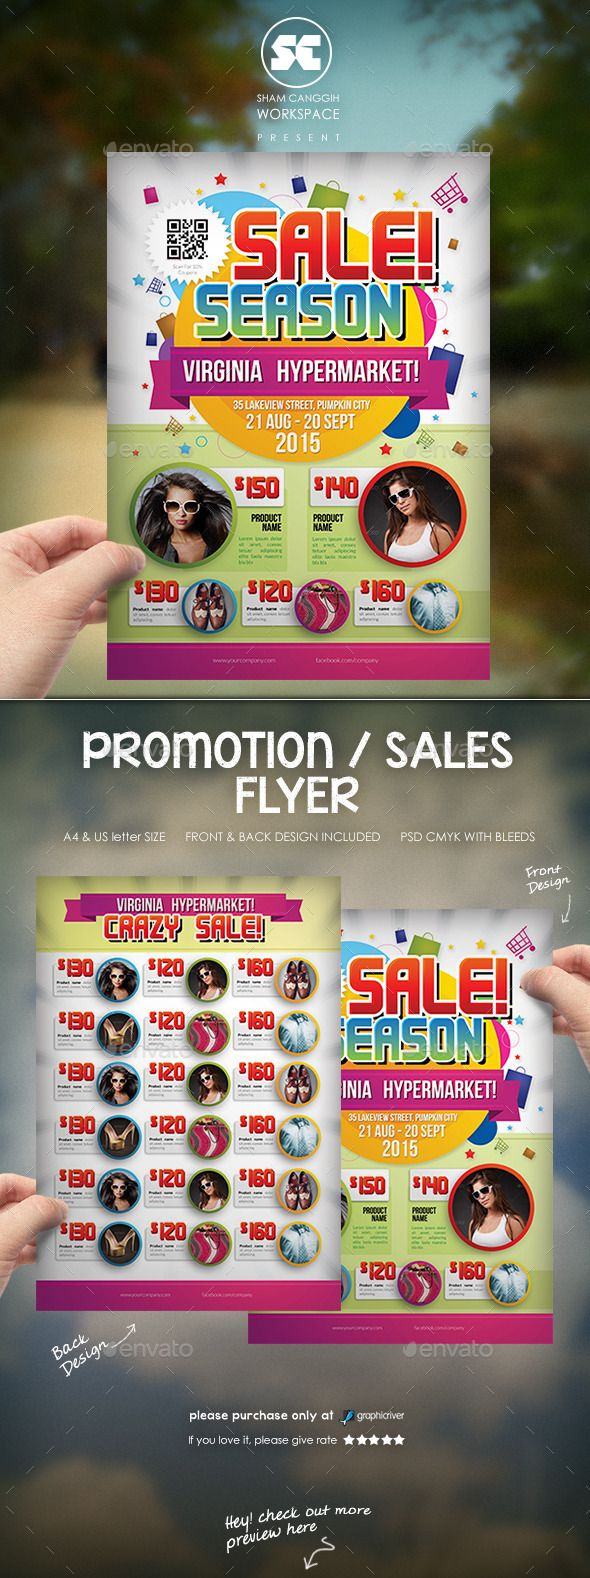 promotion flyer template